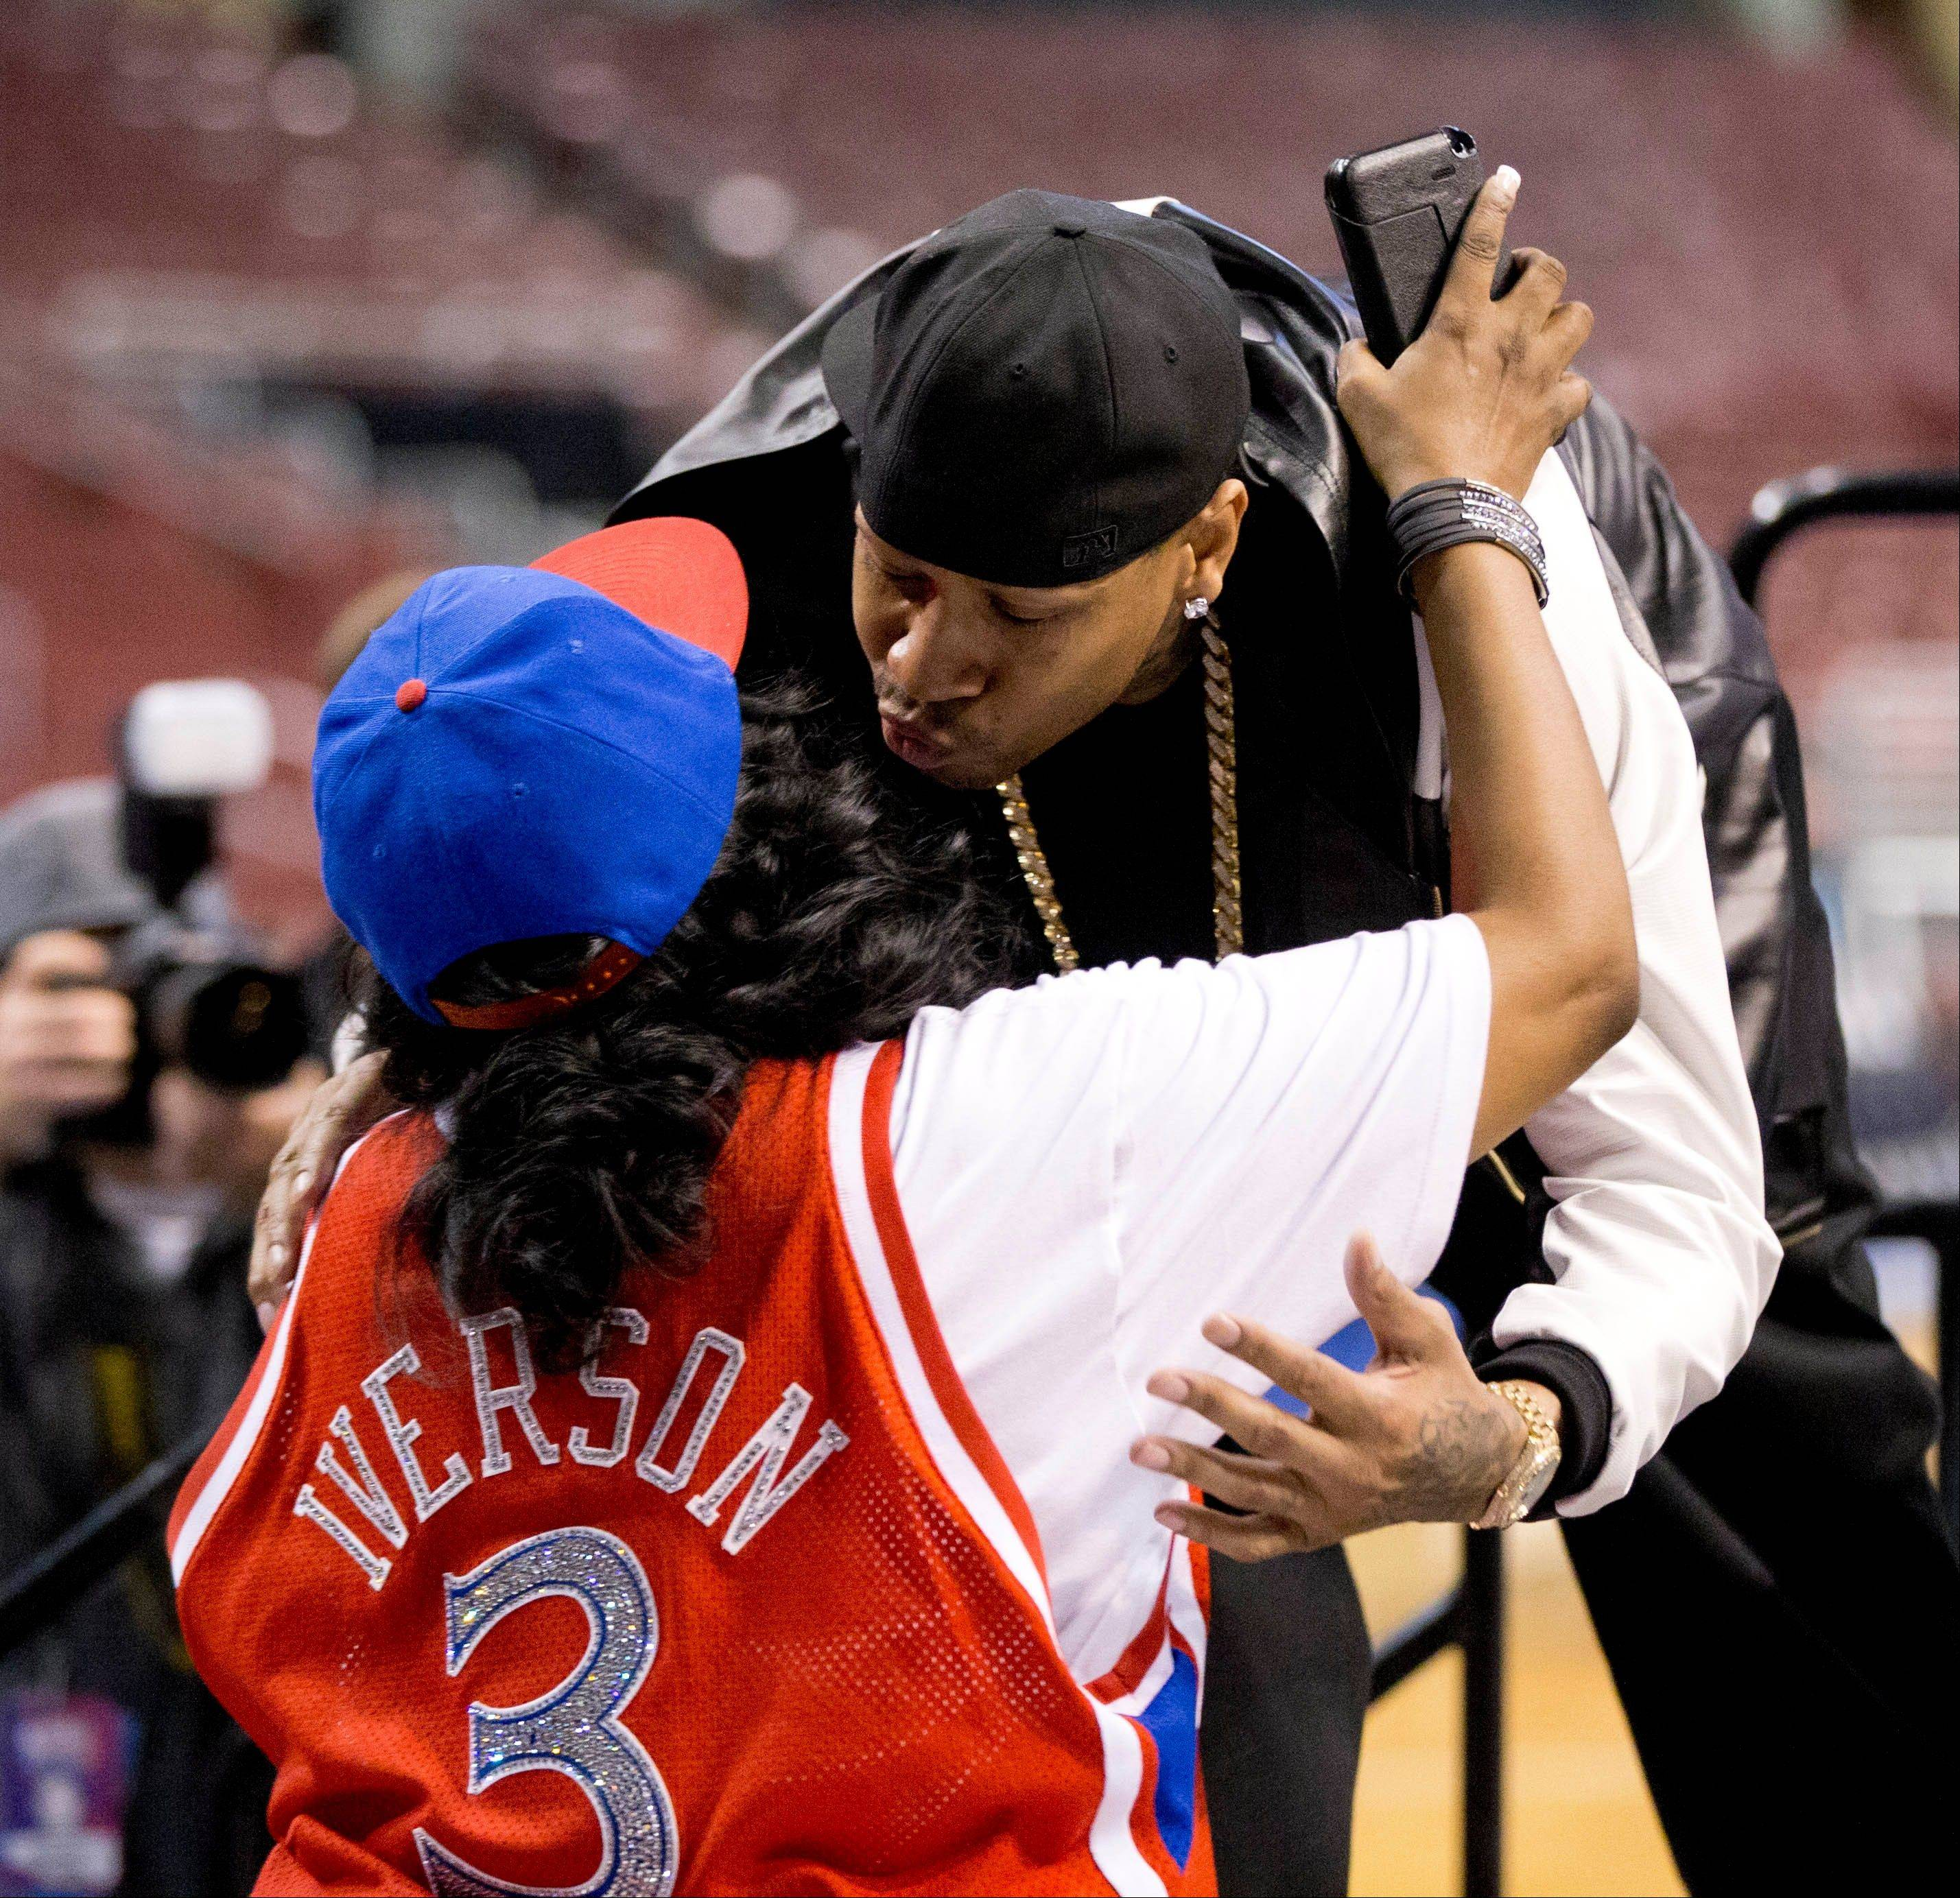 Former Philadelphia 76ers basketball player Allen Iverson greets his mother Ann Iverson as he arrives for a news conference Wednesday, Oct. 30, 2013, in Philadelphia. Iverson officially retired from the NBA, ending a 15-year career during which he won the 2001 MVP award and four scoring titles. Iverson retired in Philadelphia where he had his greatest successes and led the franchise to the 2001 NBA finals.